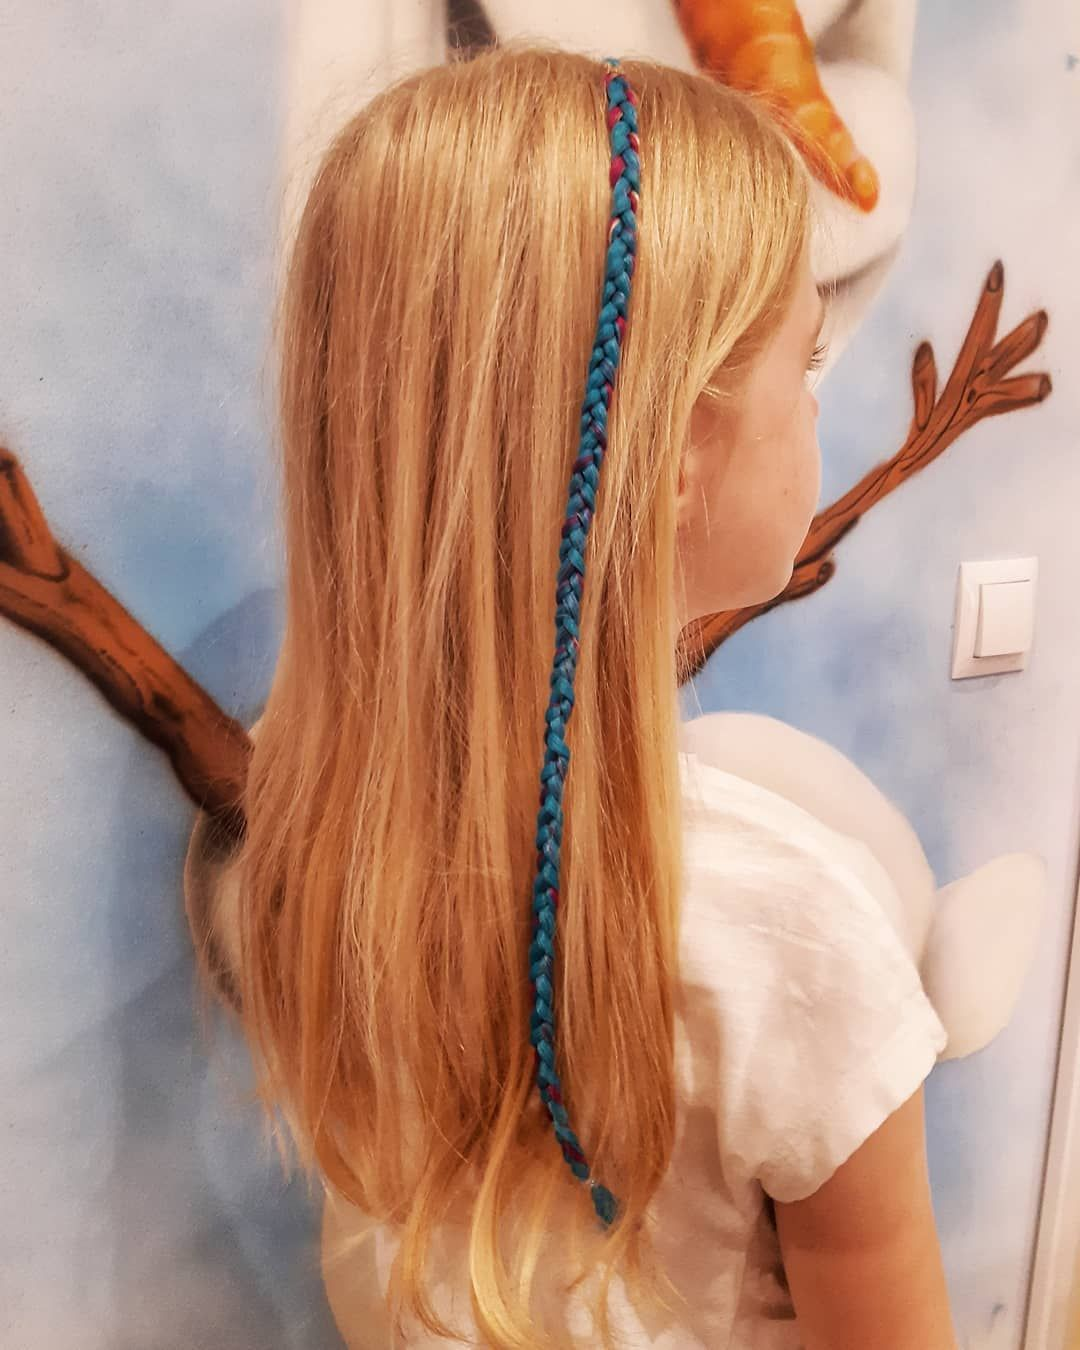 Blue 💙🦄 #braids#kolorowewarkoczyki#colorful#blue#hairstyle#blondehair